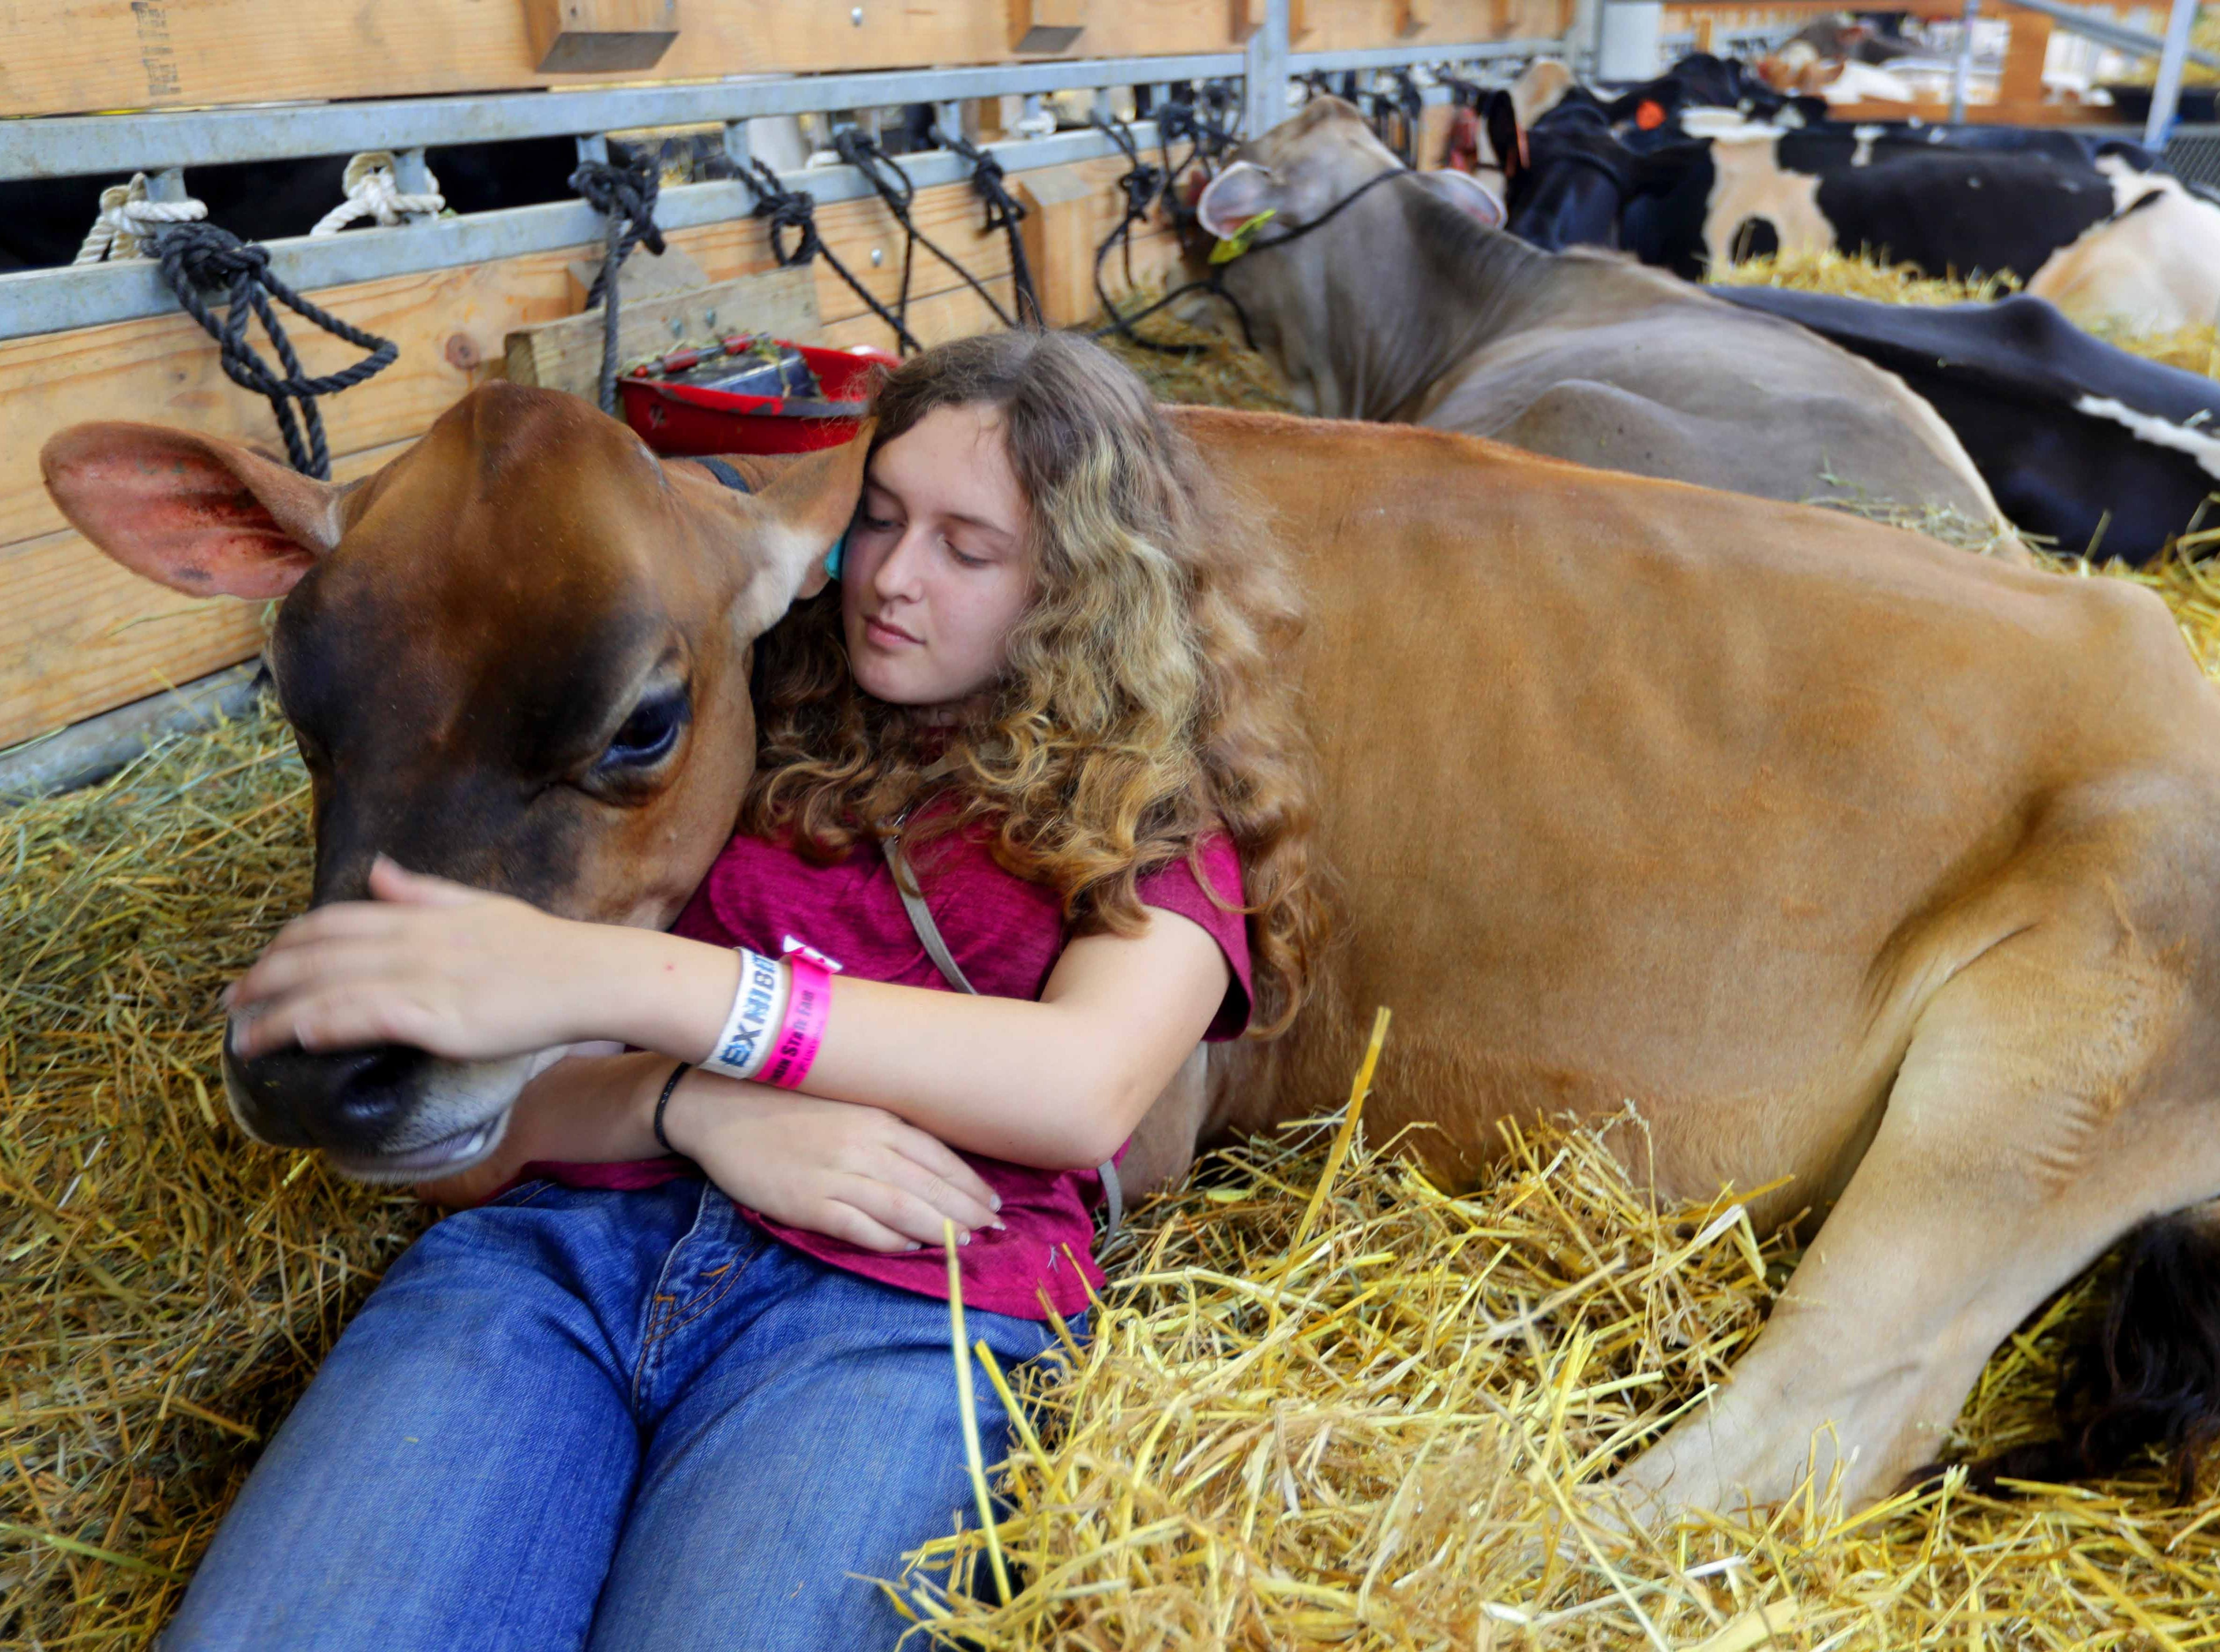 W-ANIMALS - Mckenna Layer, 14, of Richland center, Wis. and a member of the  Syresville Starlets 4-H club, takes a rest as she pets her nearly 1-year-old Jersey calf, Melody.  Youth from across the area from various 4-H groups and agriculture organizations, descended on the Wisconsin State Fair grounds in West Allis to ready their animals for shows. The opening of the 167th Wisconsin State Fair took place at the Wisconsin State Fair grounds in West Allis on Thursday, August 2, 2018. The fair runs through Sunday, August 12  -  Photo by Mike De Sisti / Milwaukee Journal Sentinel